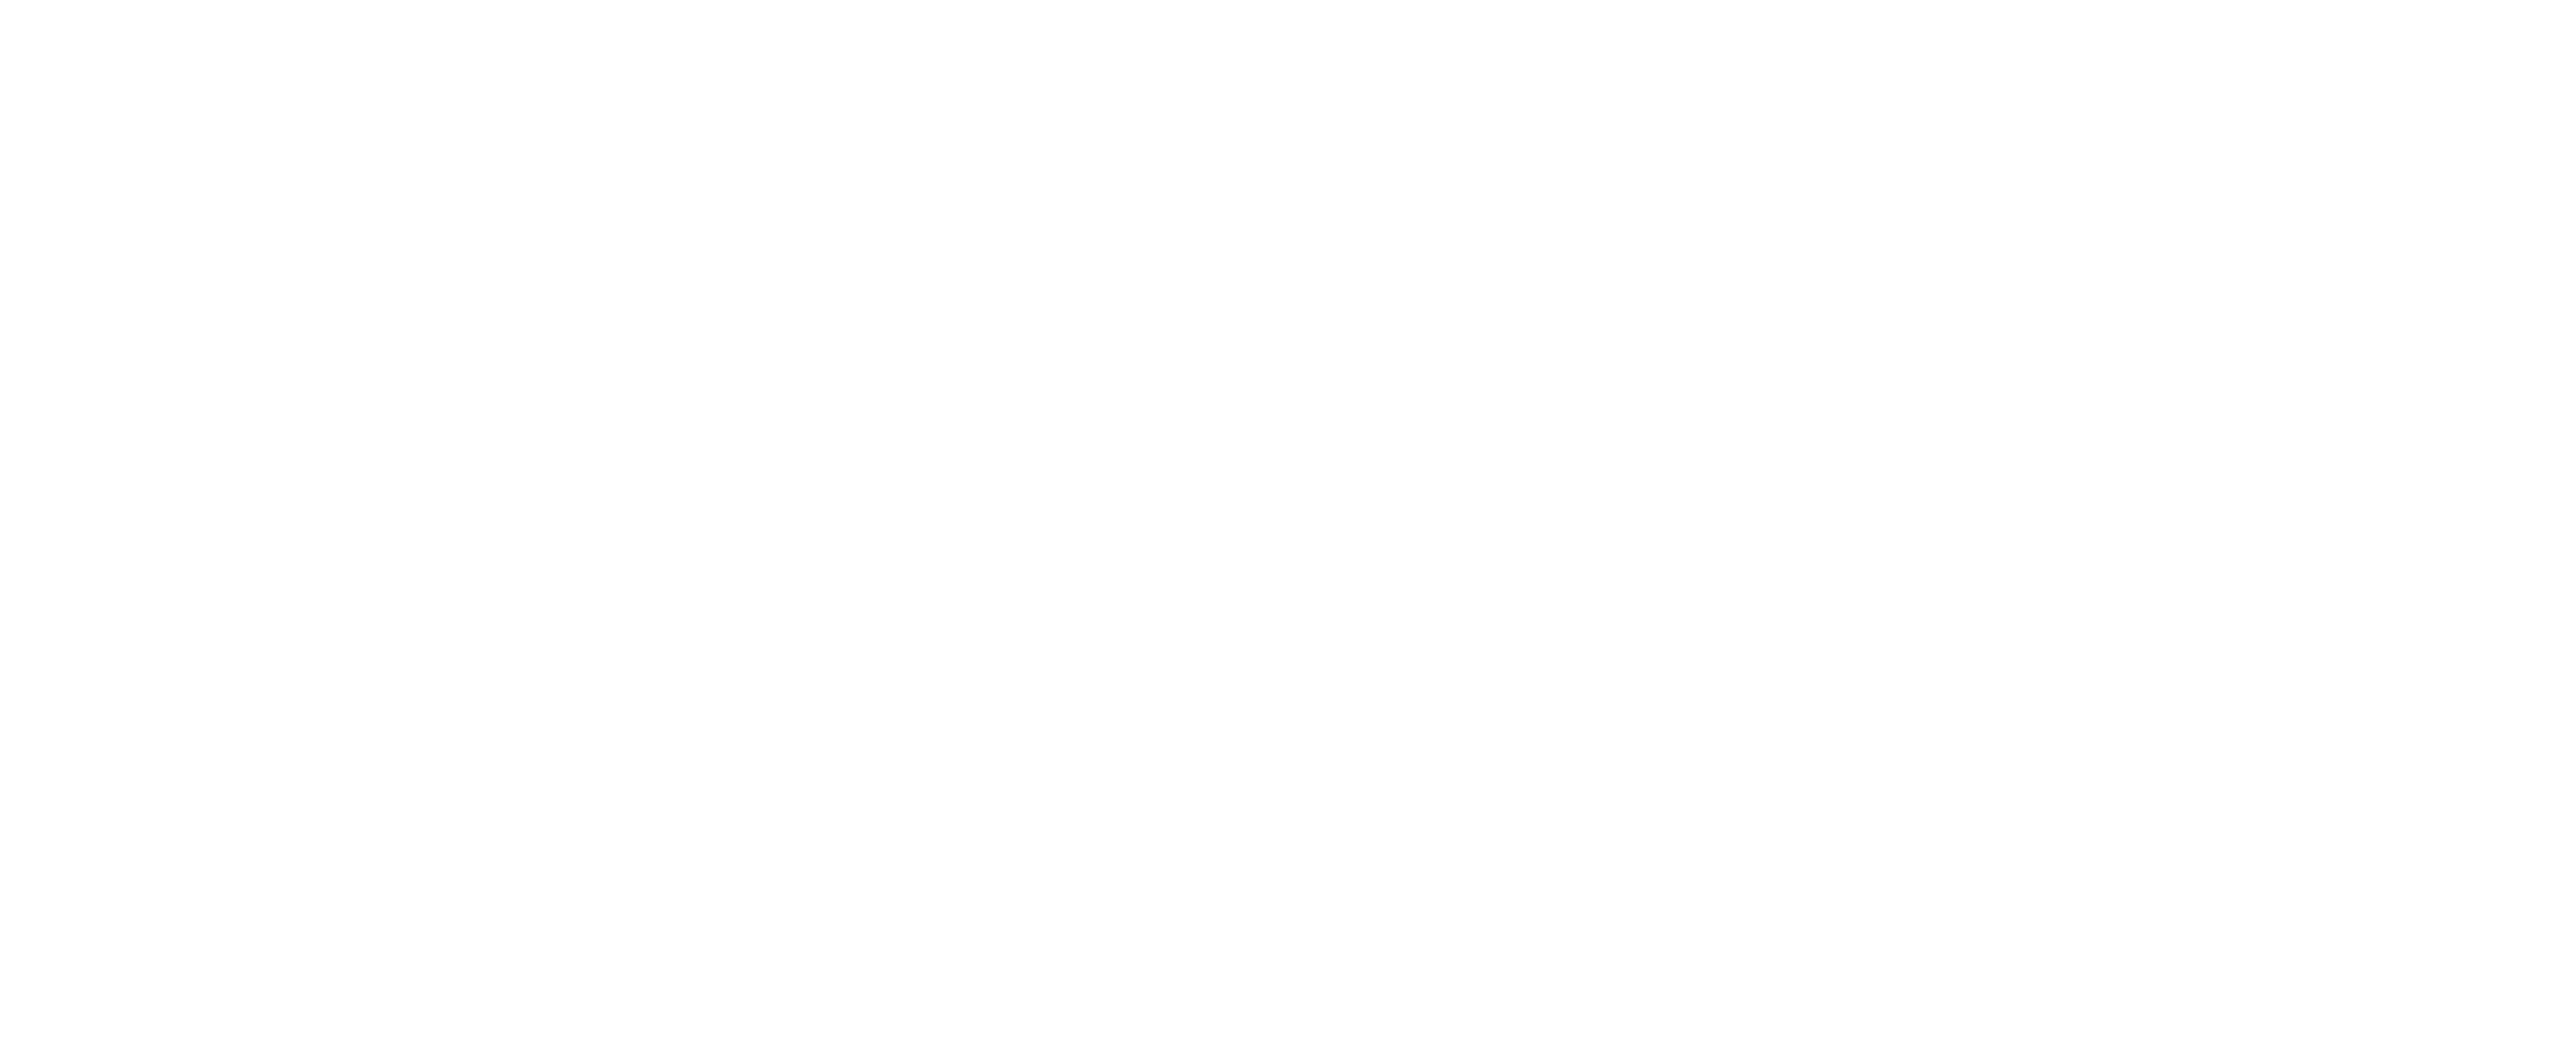 House of Caviar & Fine Food